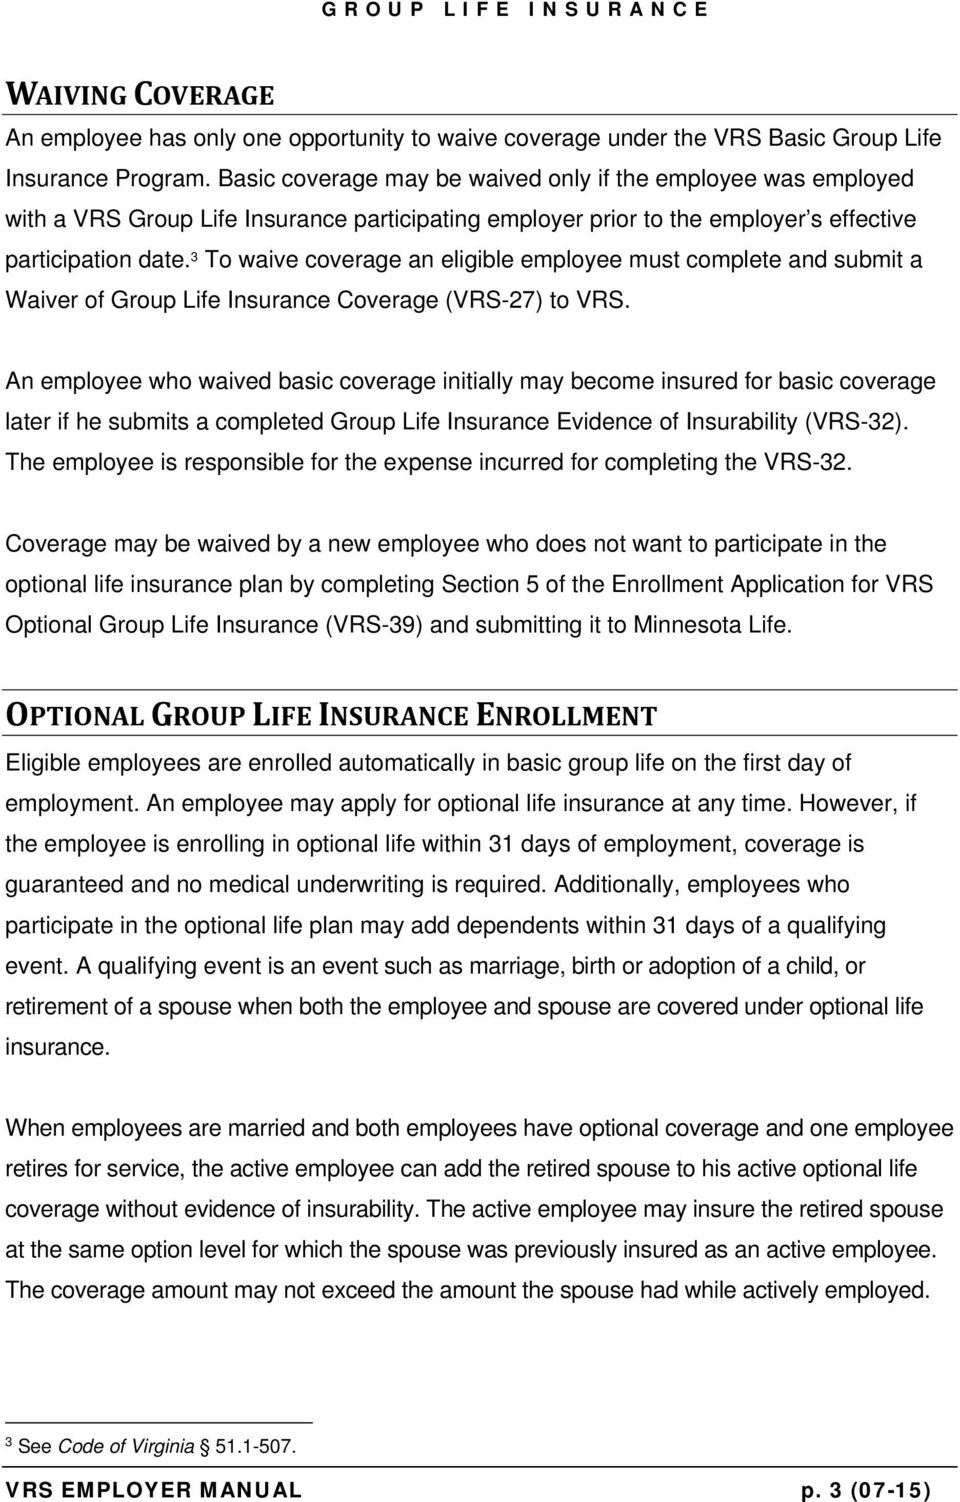 3 To waive coverage an eligible employee must complete and submit a Waiver of Group Life Insurance Coverage (VRS-27) to VRS.